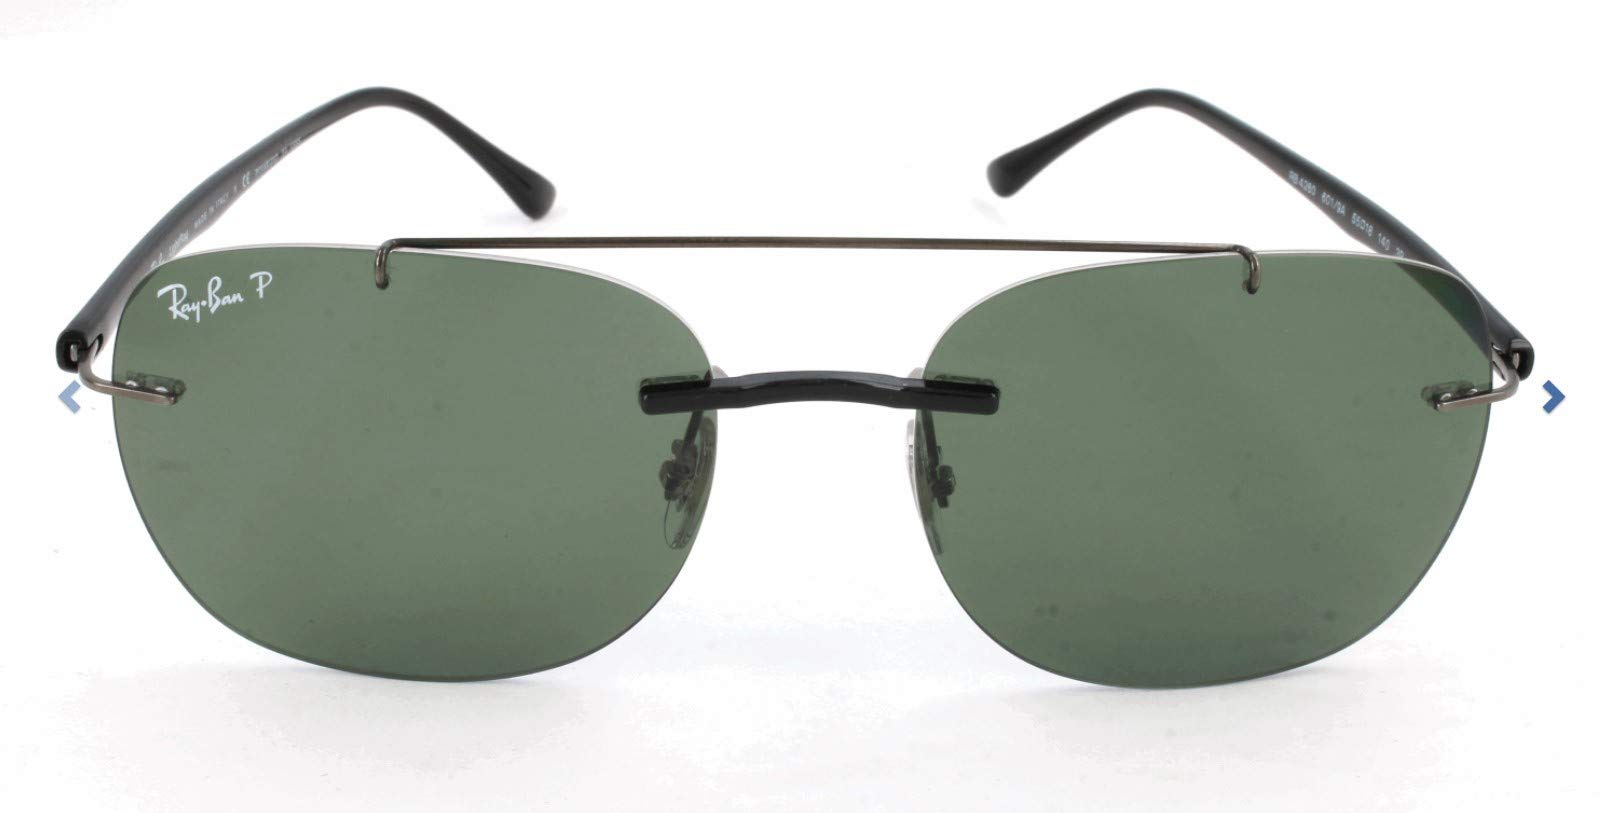 Ray-Ban Men's Injected Man Sunglass Polarized Square, BLACK, 55 mm